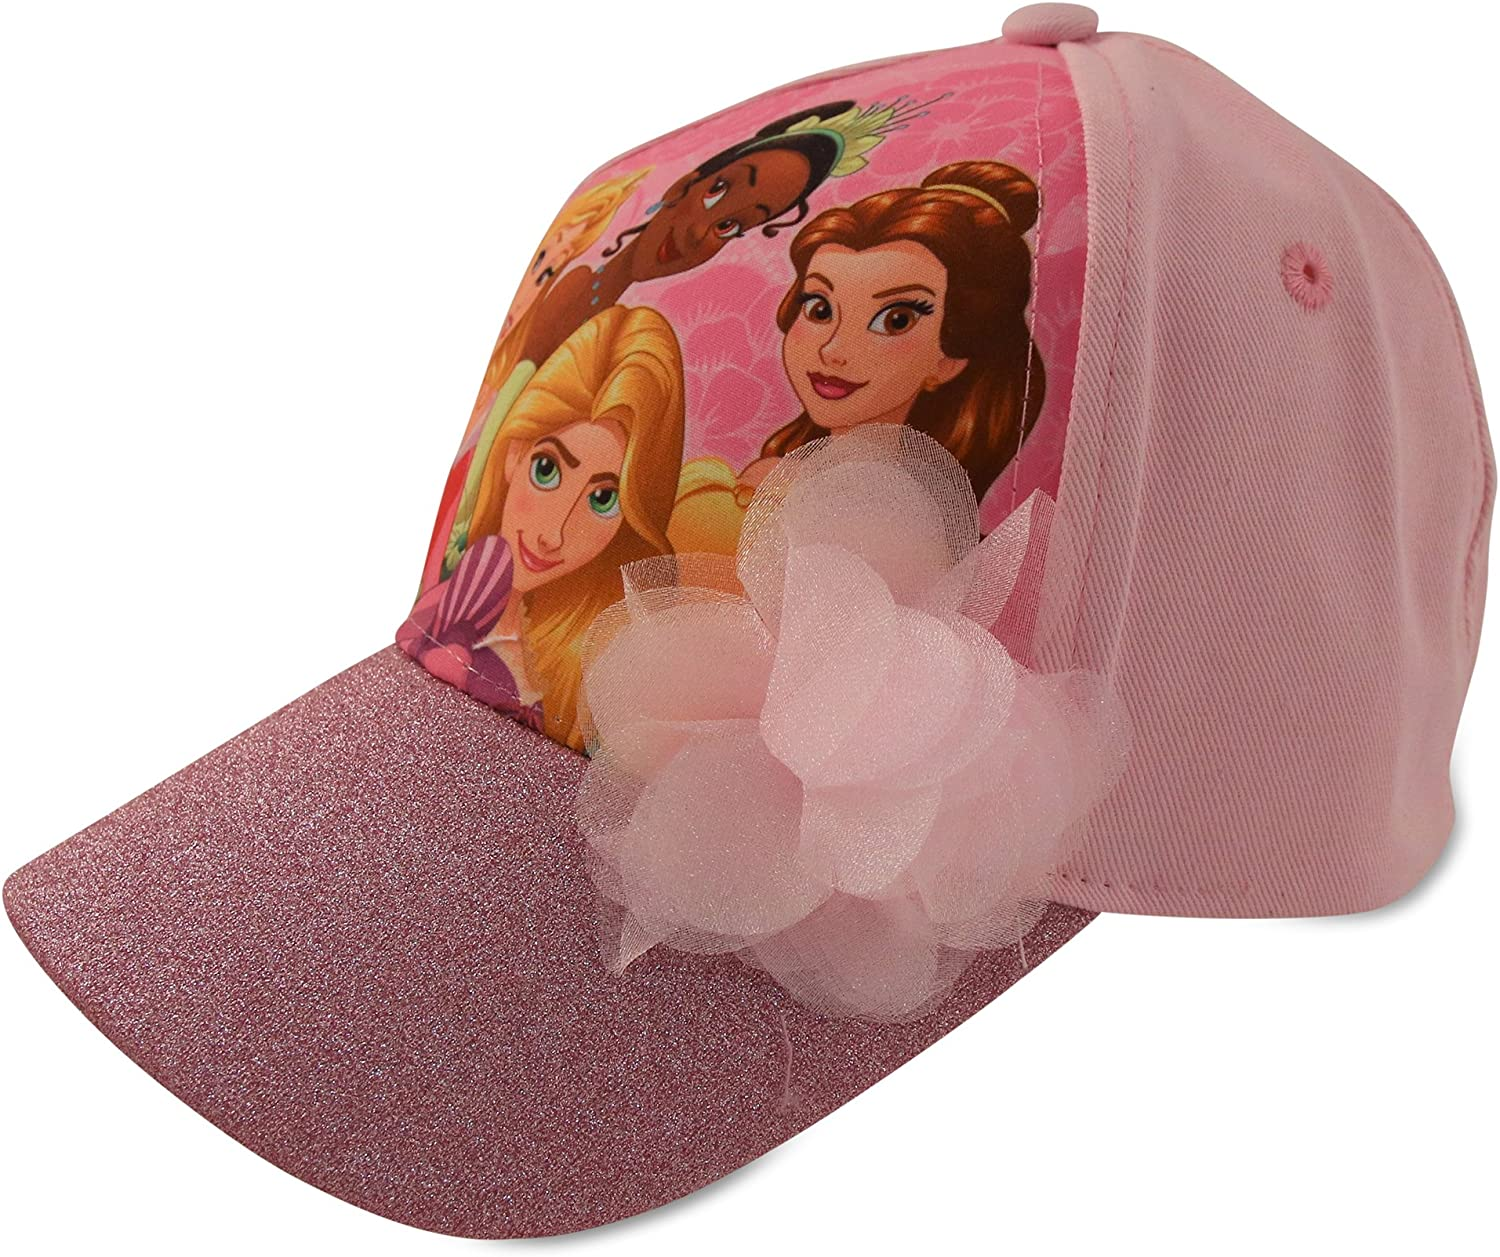 Popular brand in the world Disney Frozen Elsa and Anna Outstanding Cotton Baseball Pom Cap with Glitter